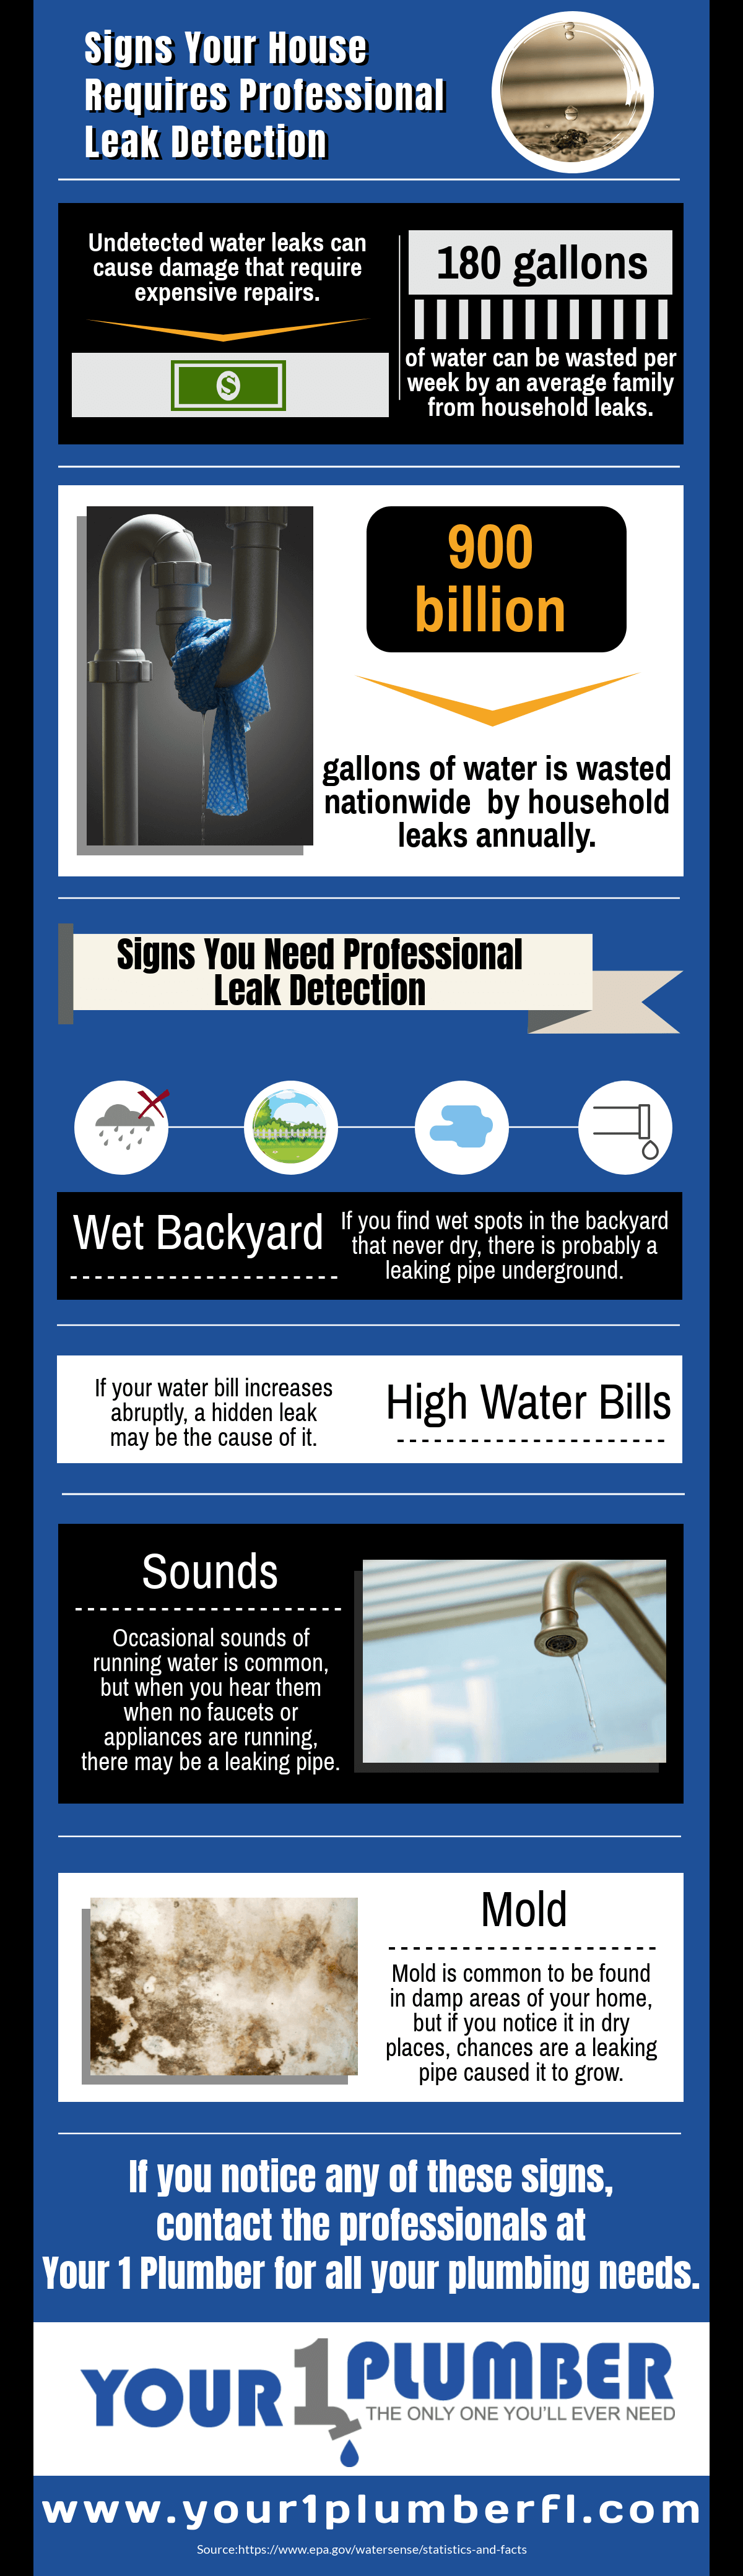 signs-your-house-requires-professional-leak-detection